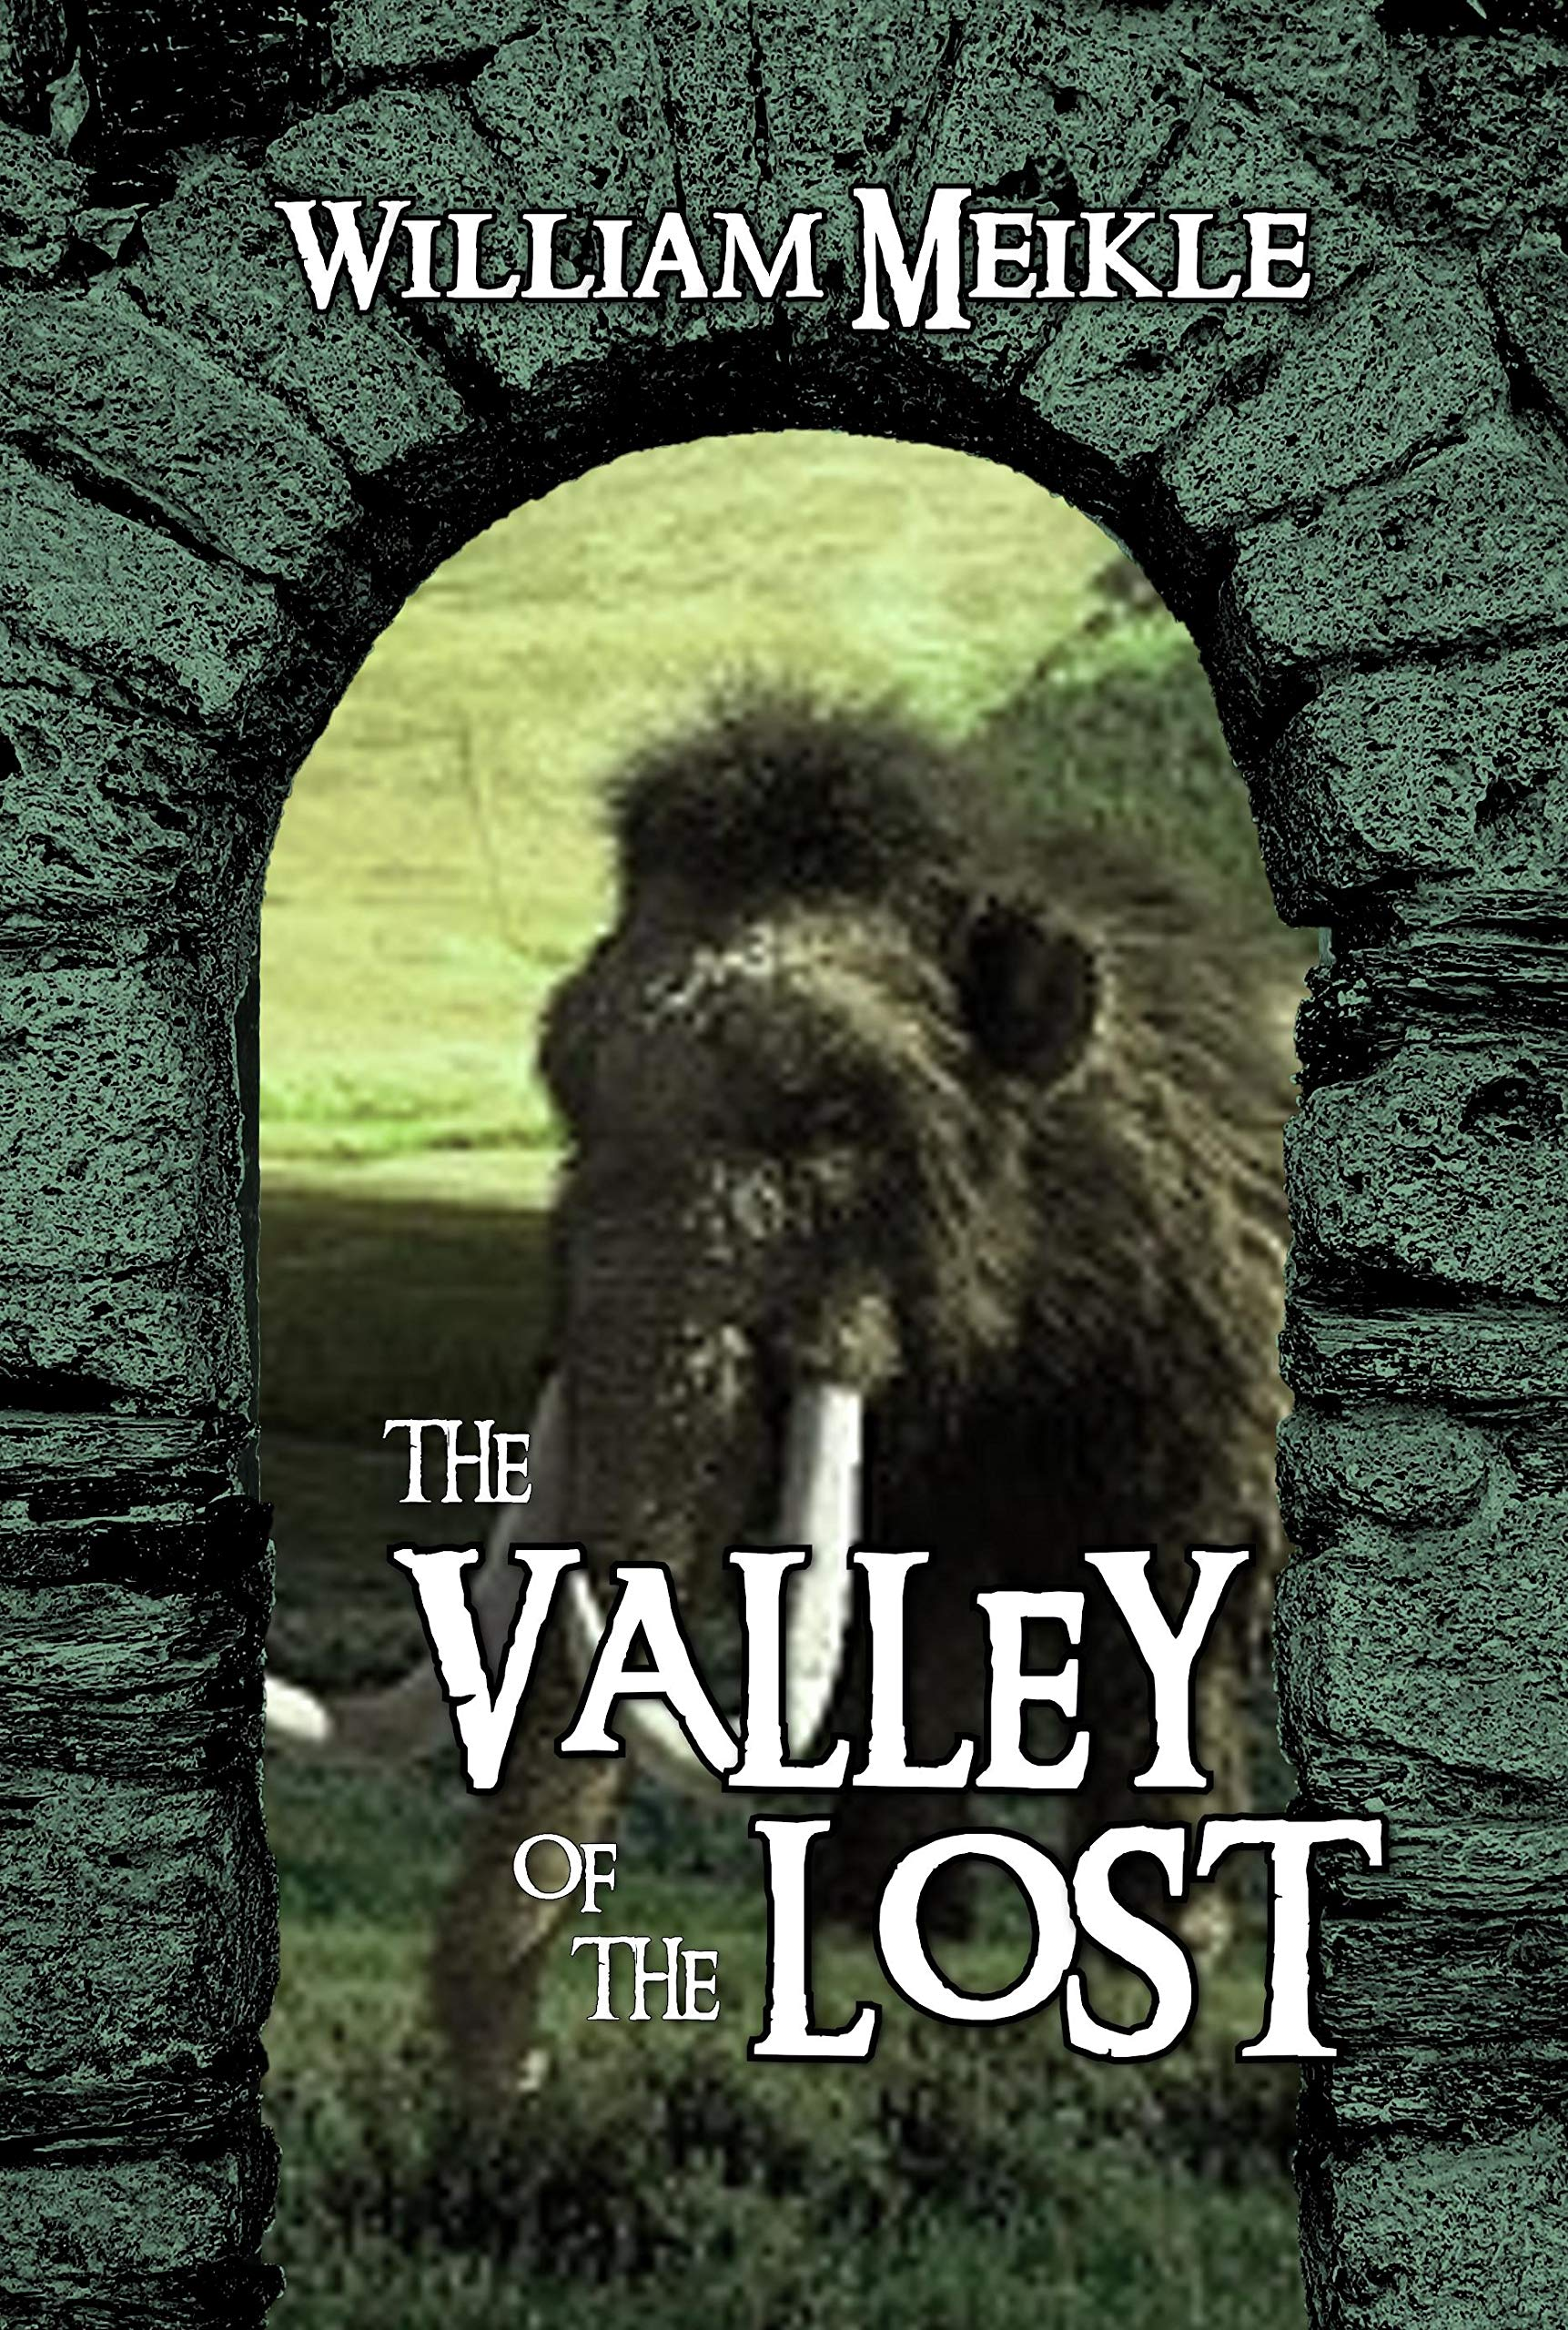 The Valley of the Lost: A Lost World adventure (The William Meikle Chapbook Collection 38)